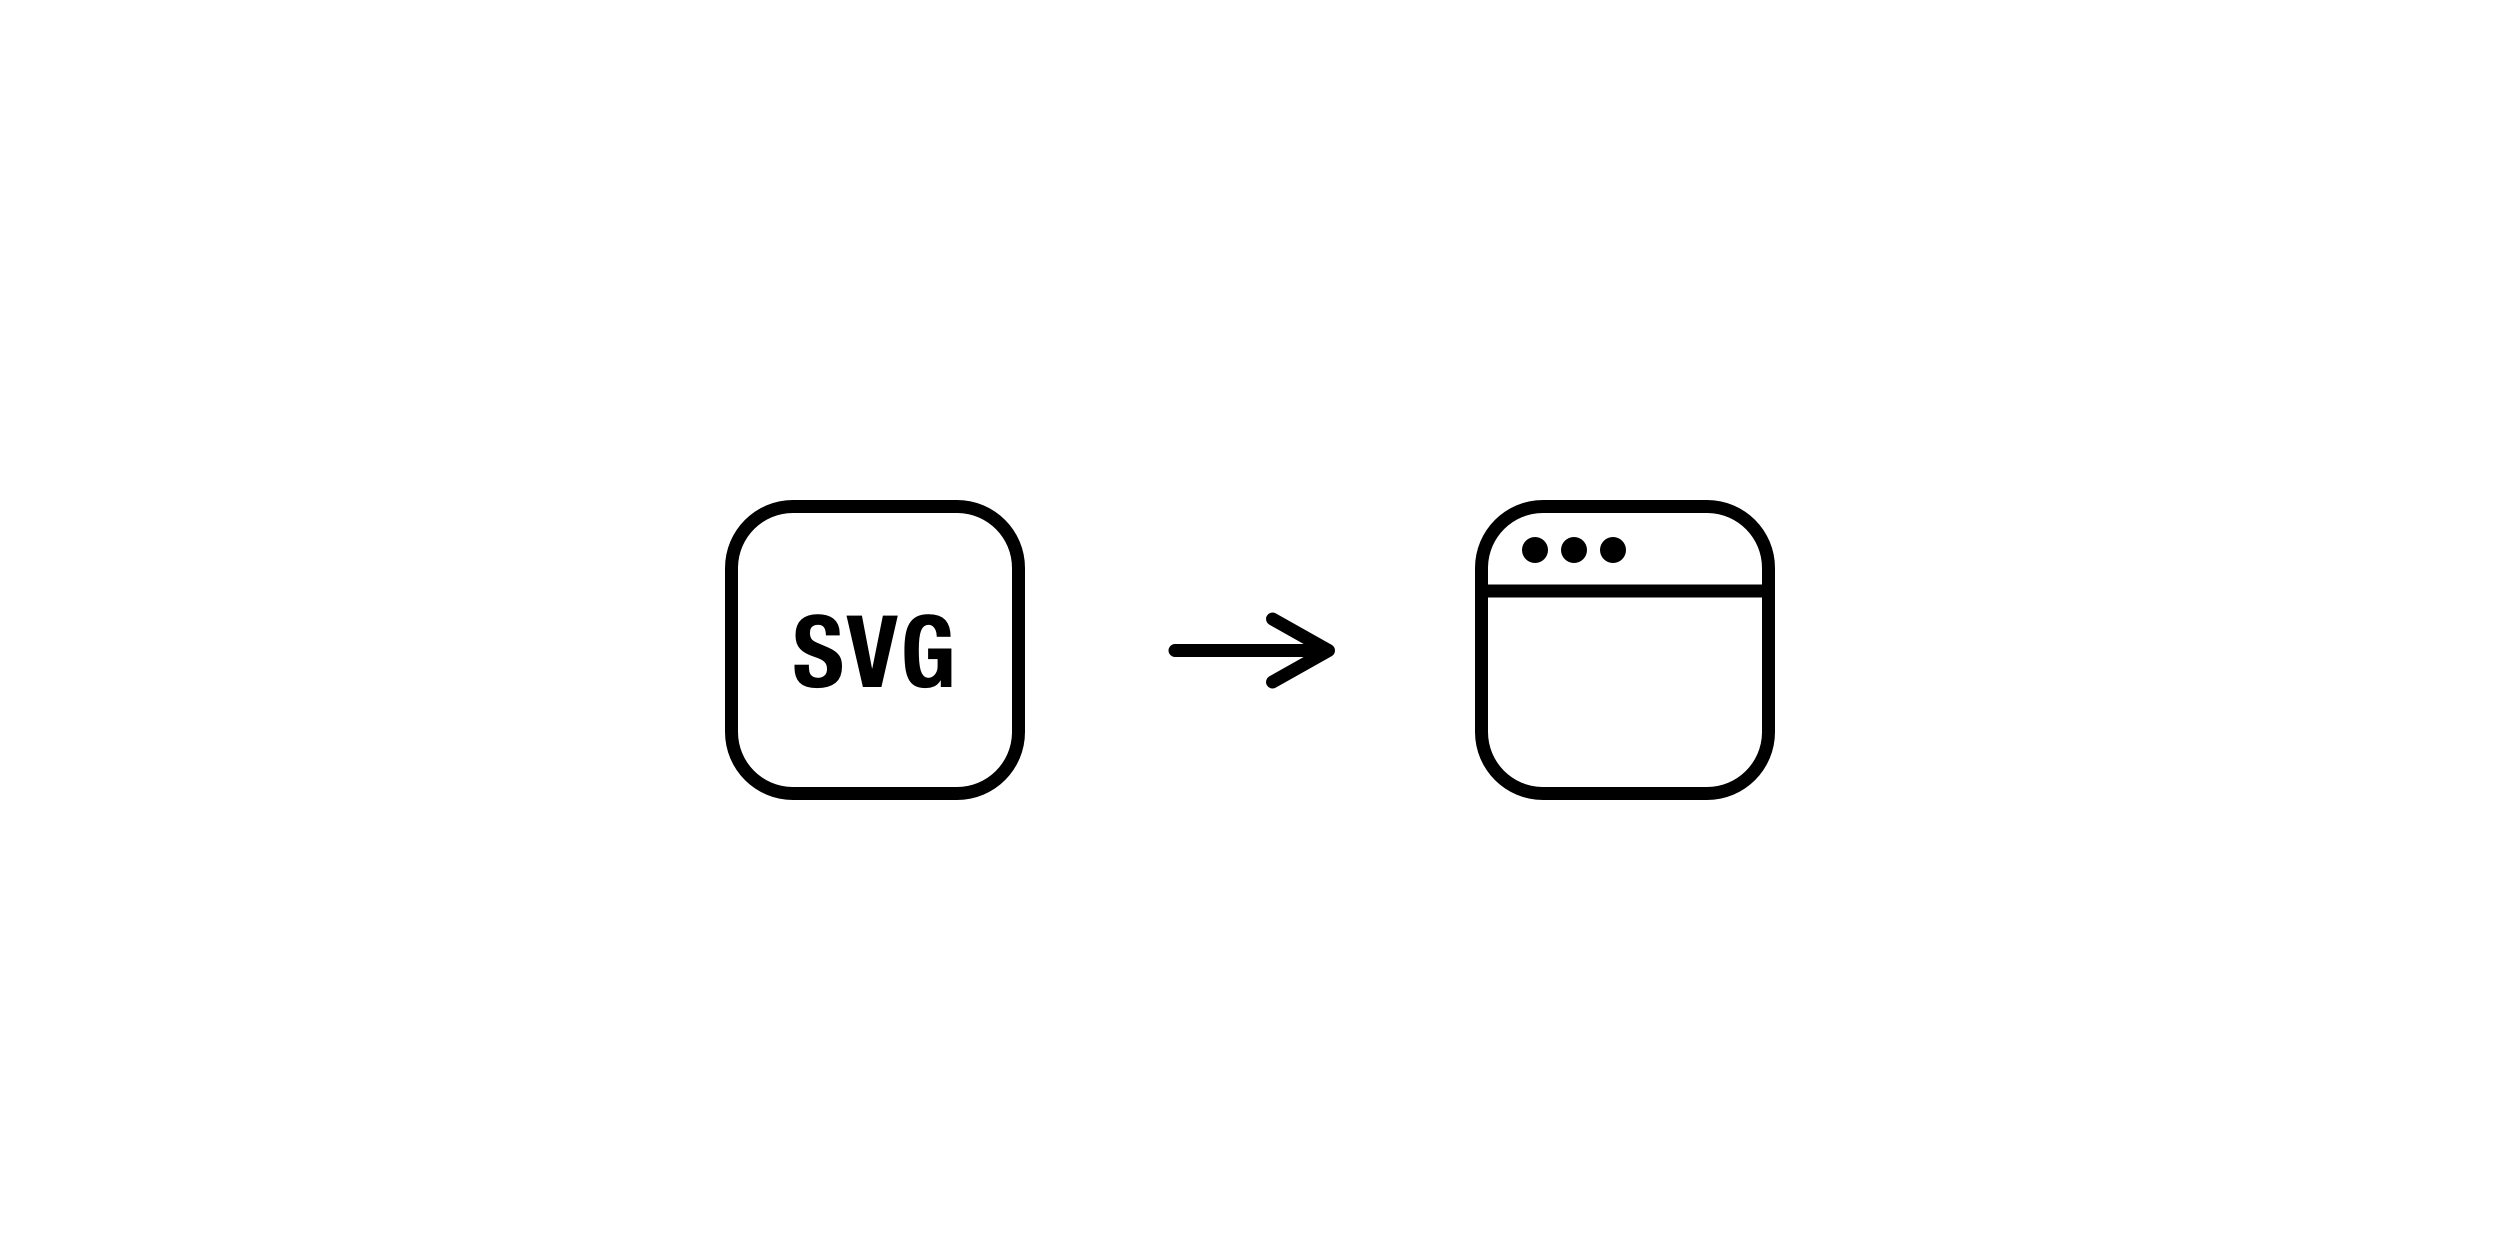 are you using svg favicons yet a guide for modern browsers by antoine boulanger the startup medium are you using svg favicons yet a guide